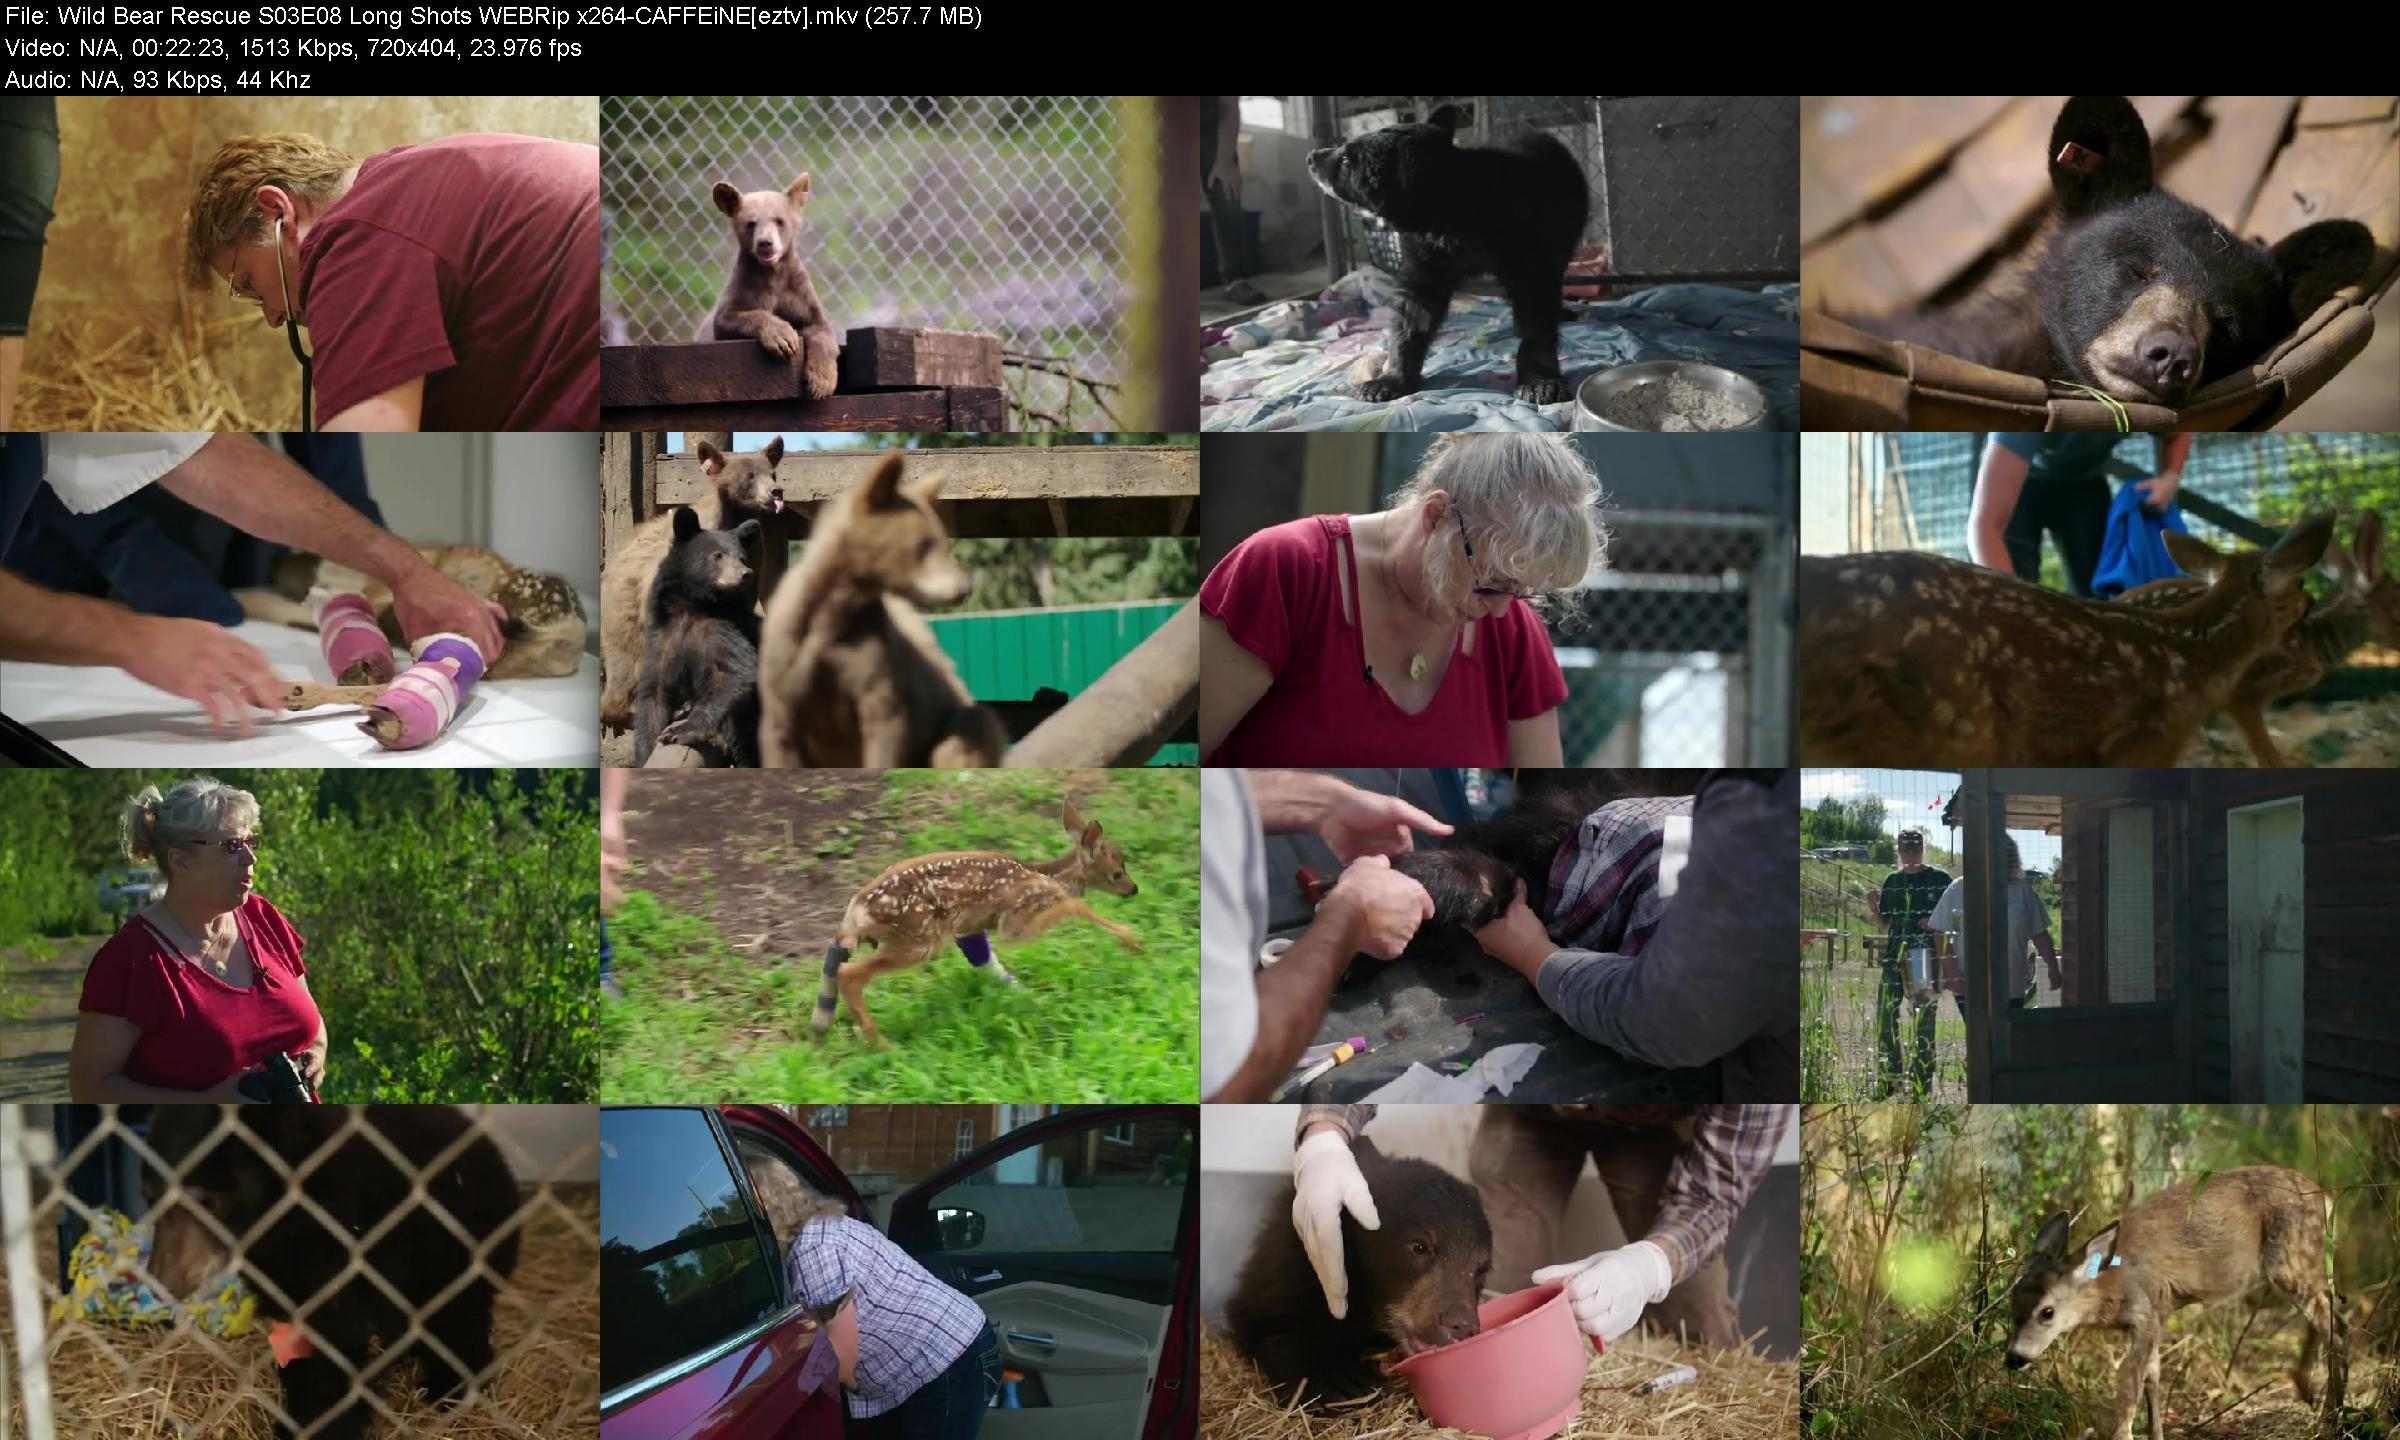 Wild Bear Rescue S03e08 Long Shots Webrip X264-caffeine